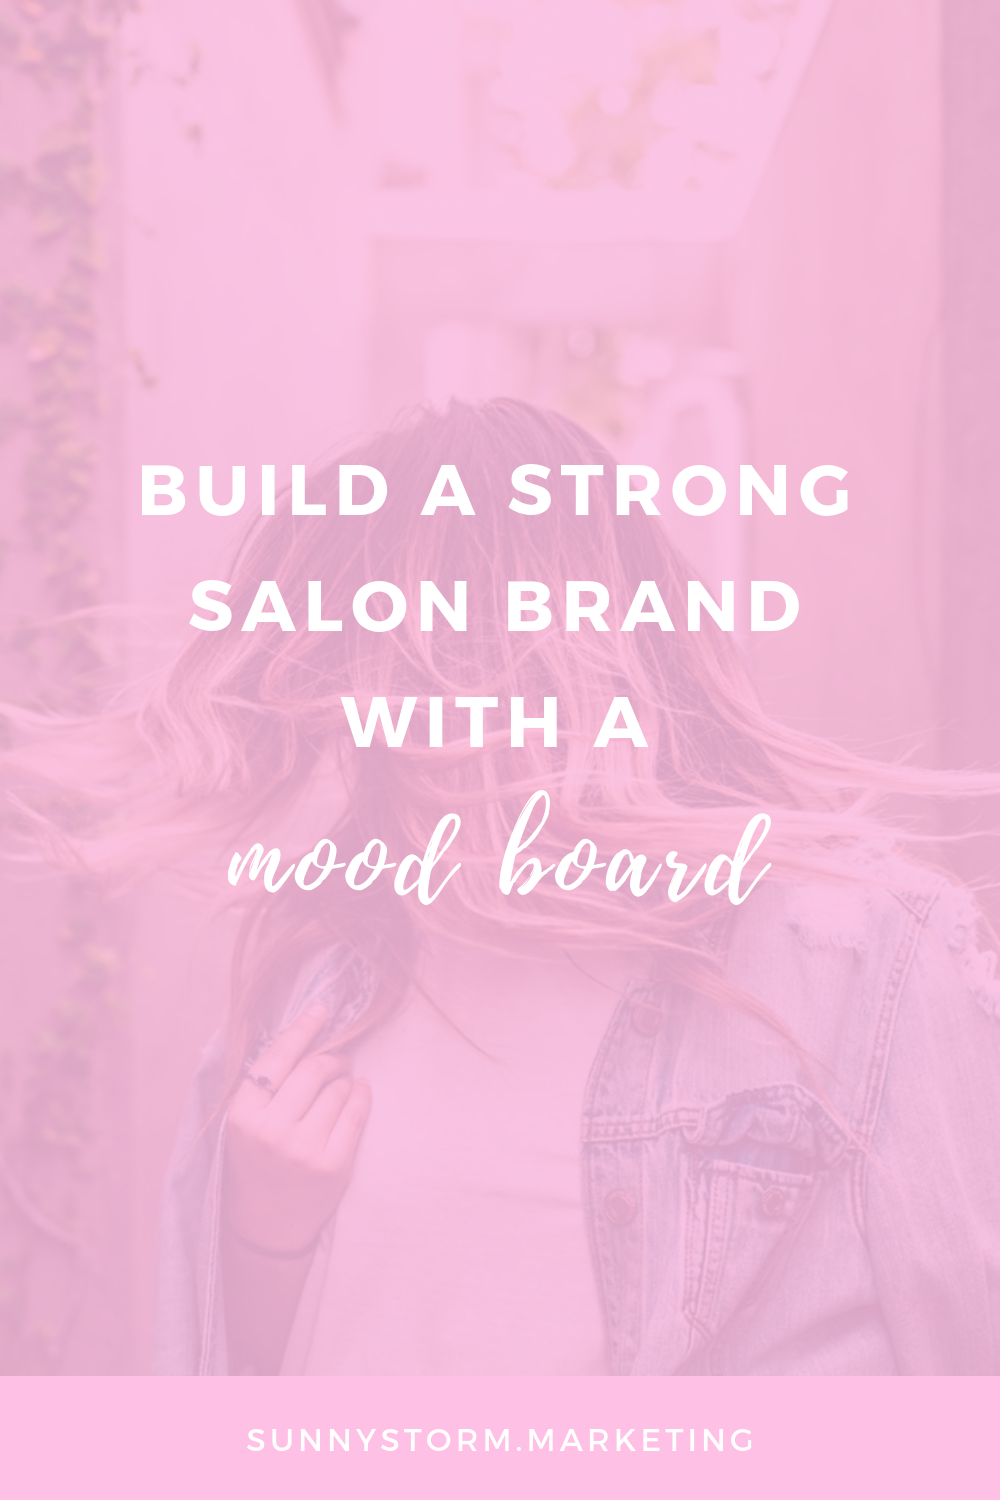 How To Make A Mood Board For Your Salon Brand For Free In Canva Salon Marketing Salon Promotions Beauty Bar Salon